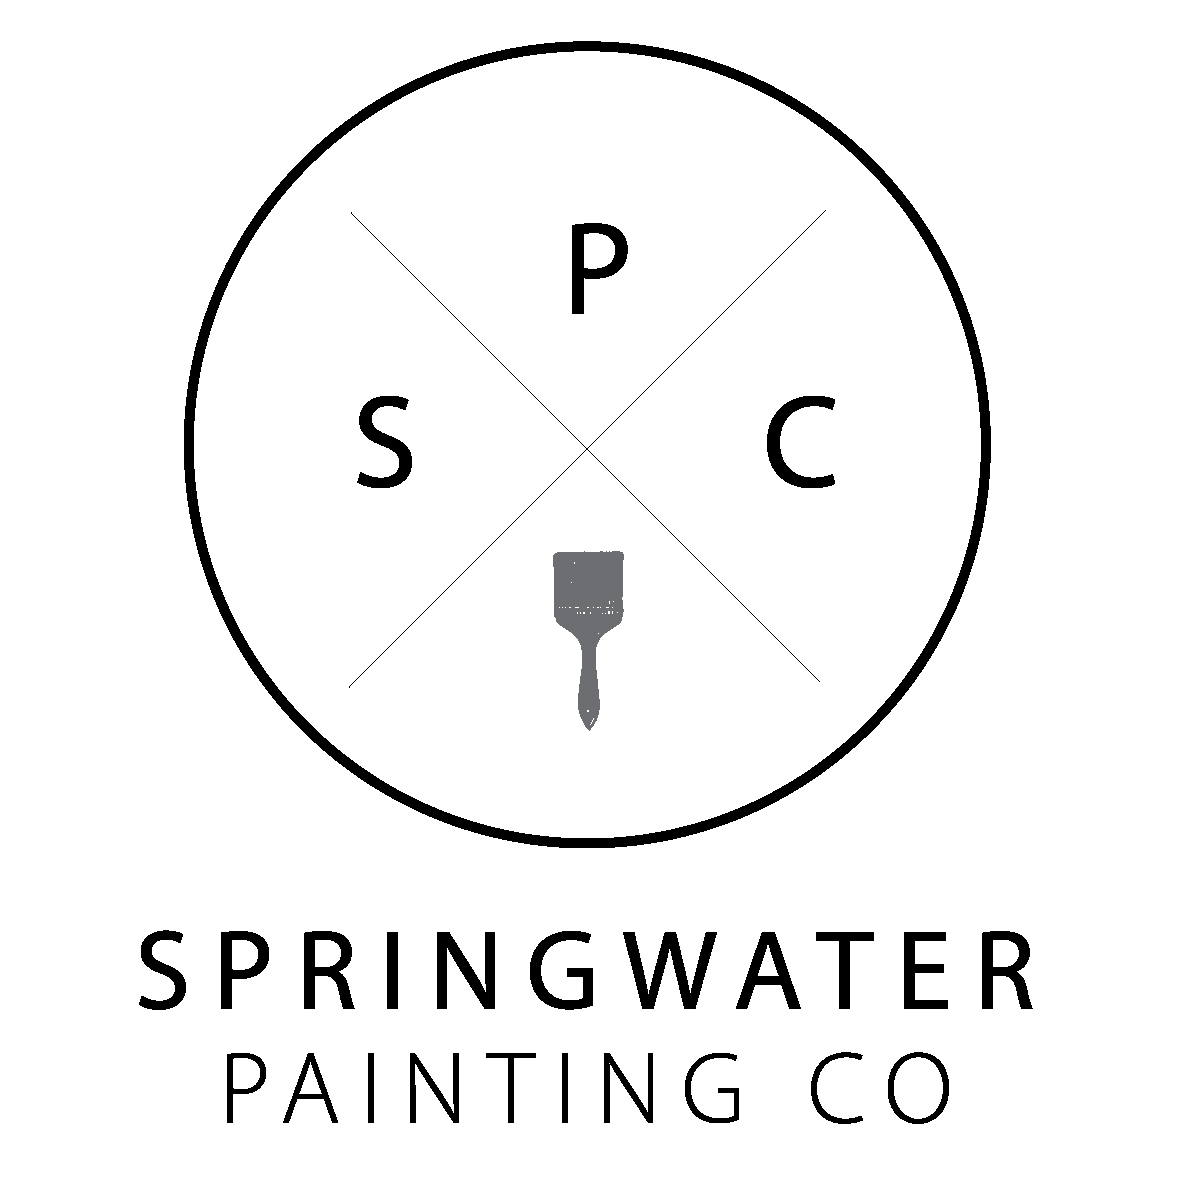 Springwater Painting Co.